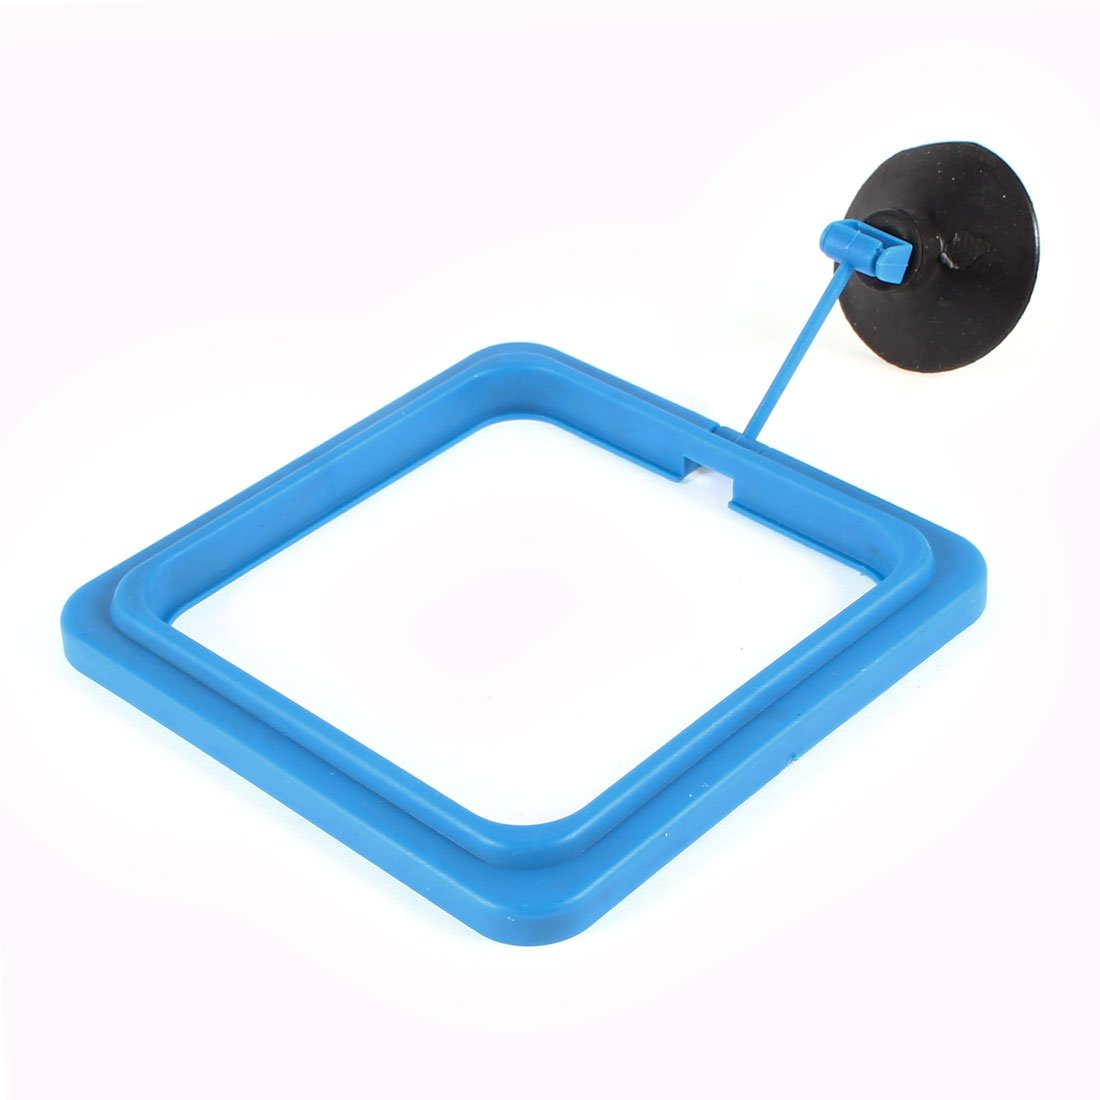 Aquarium Fish Food Feeder Feeding Ring Black Blue w Suction Cup Sourcingmap a14030700ux0777